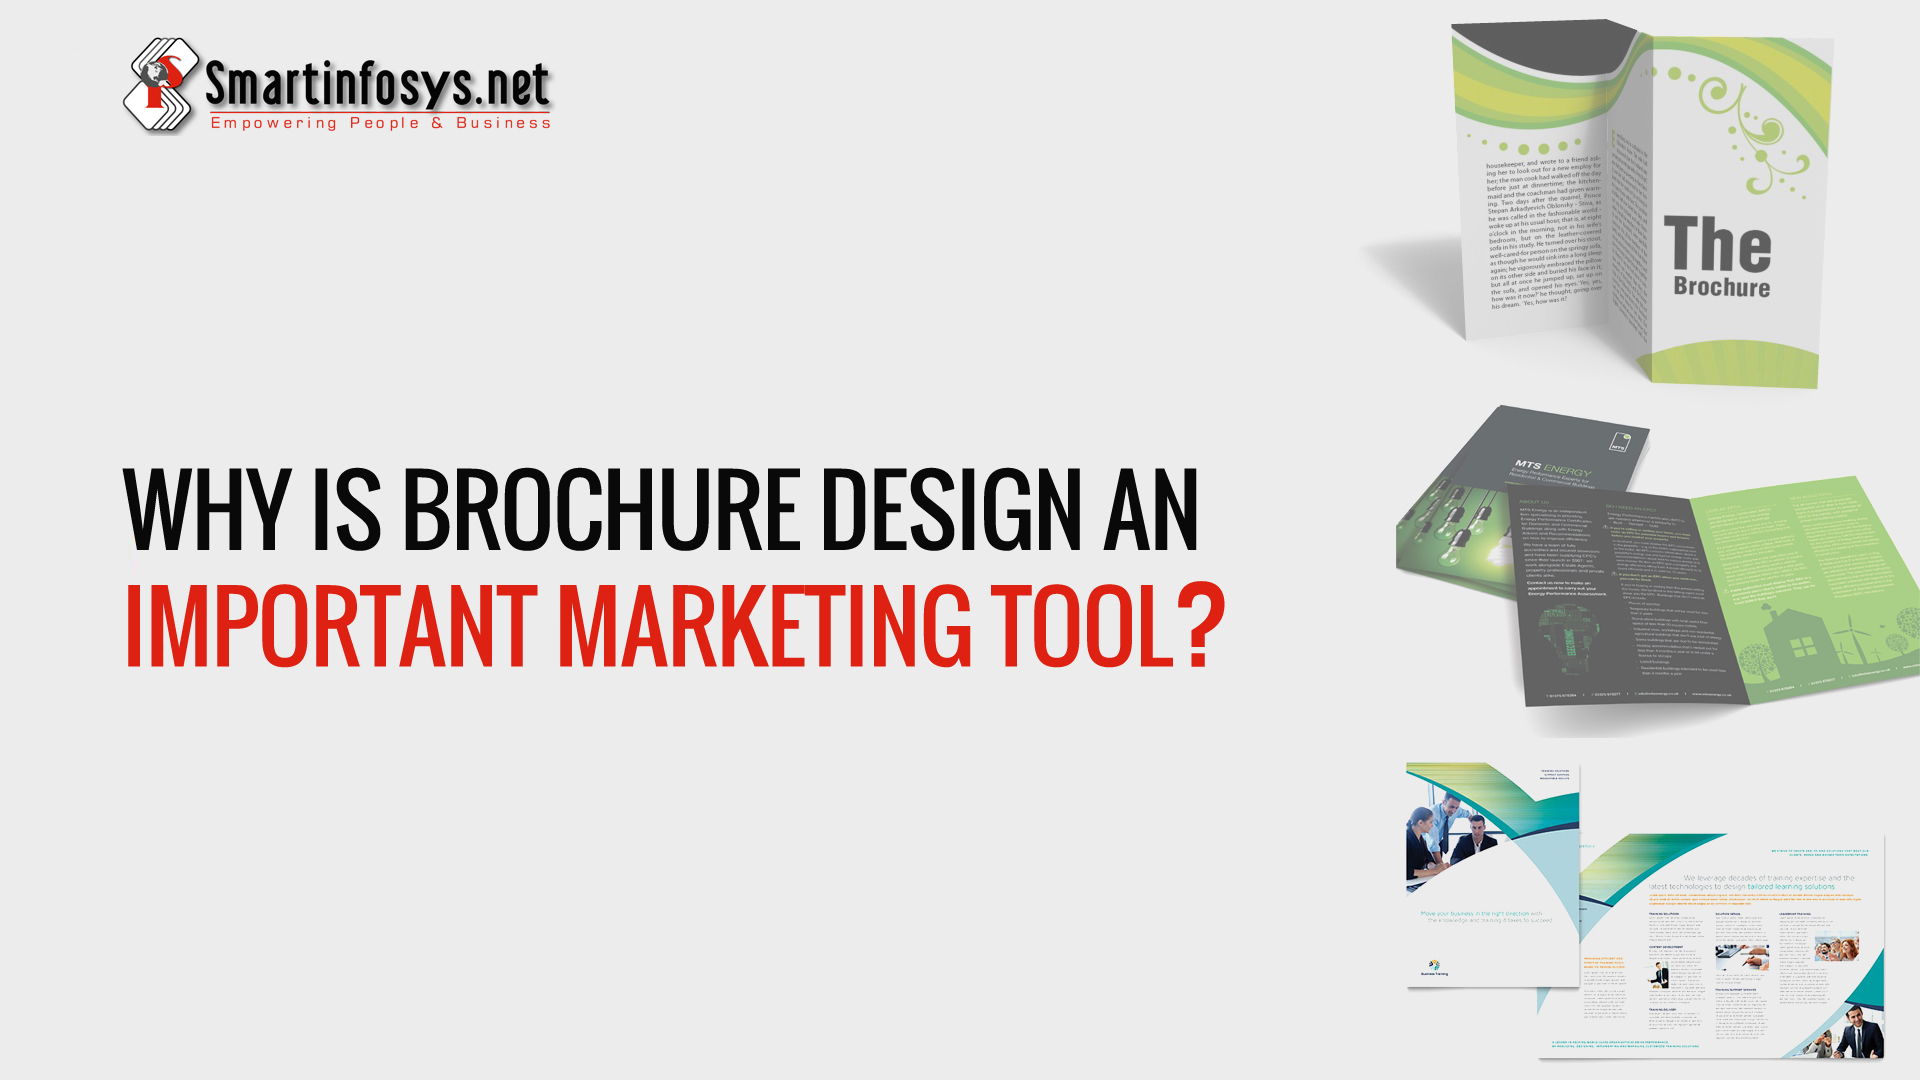 Why Is Brochure Design an Important Marketing Tool?